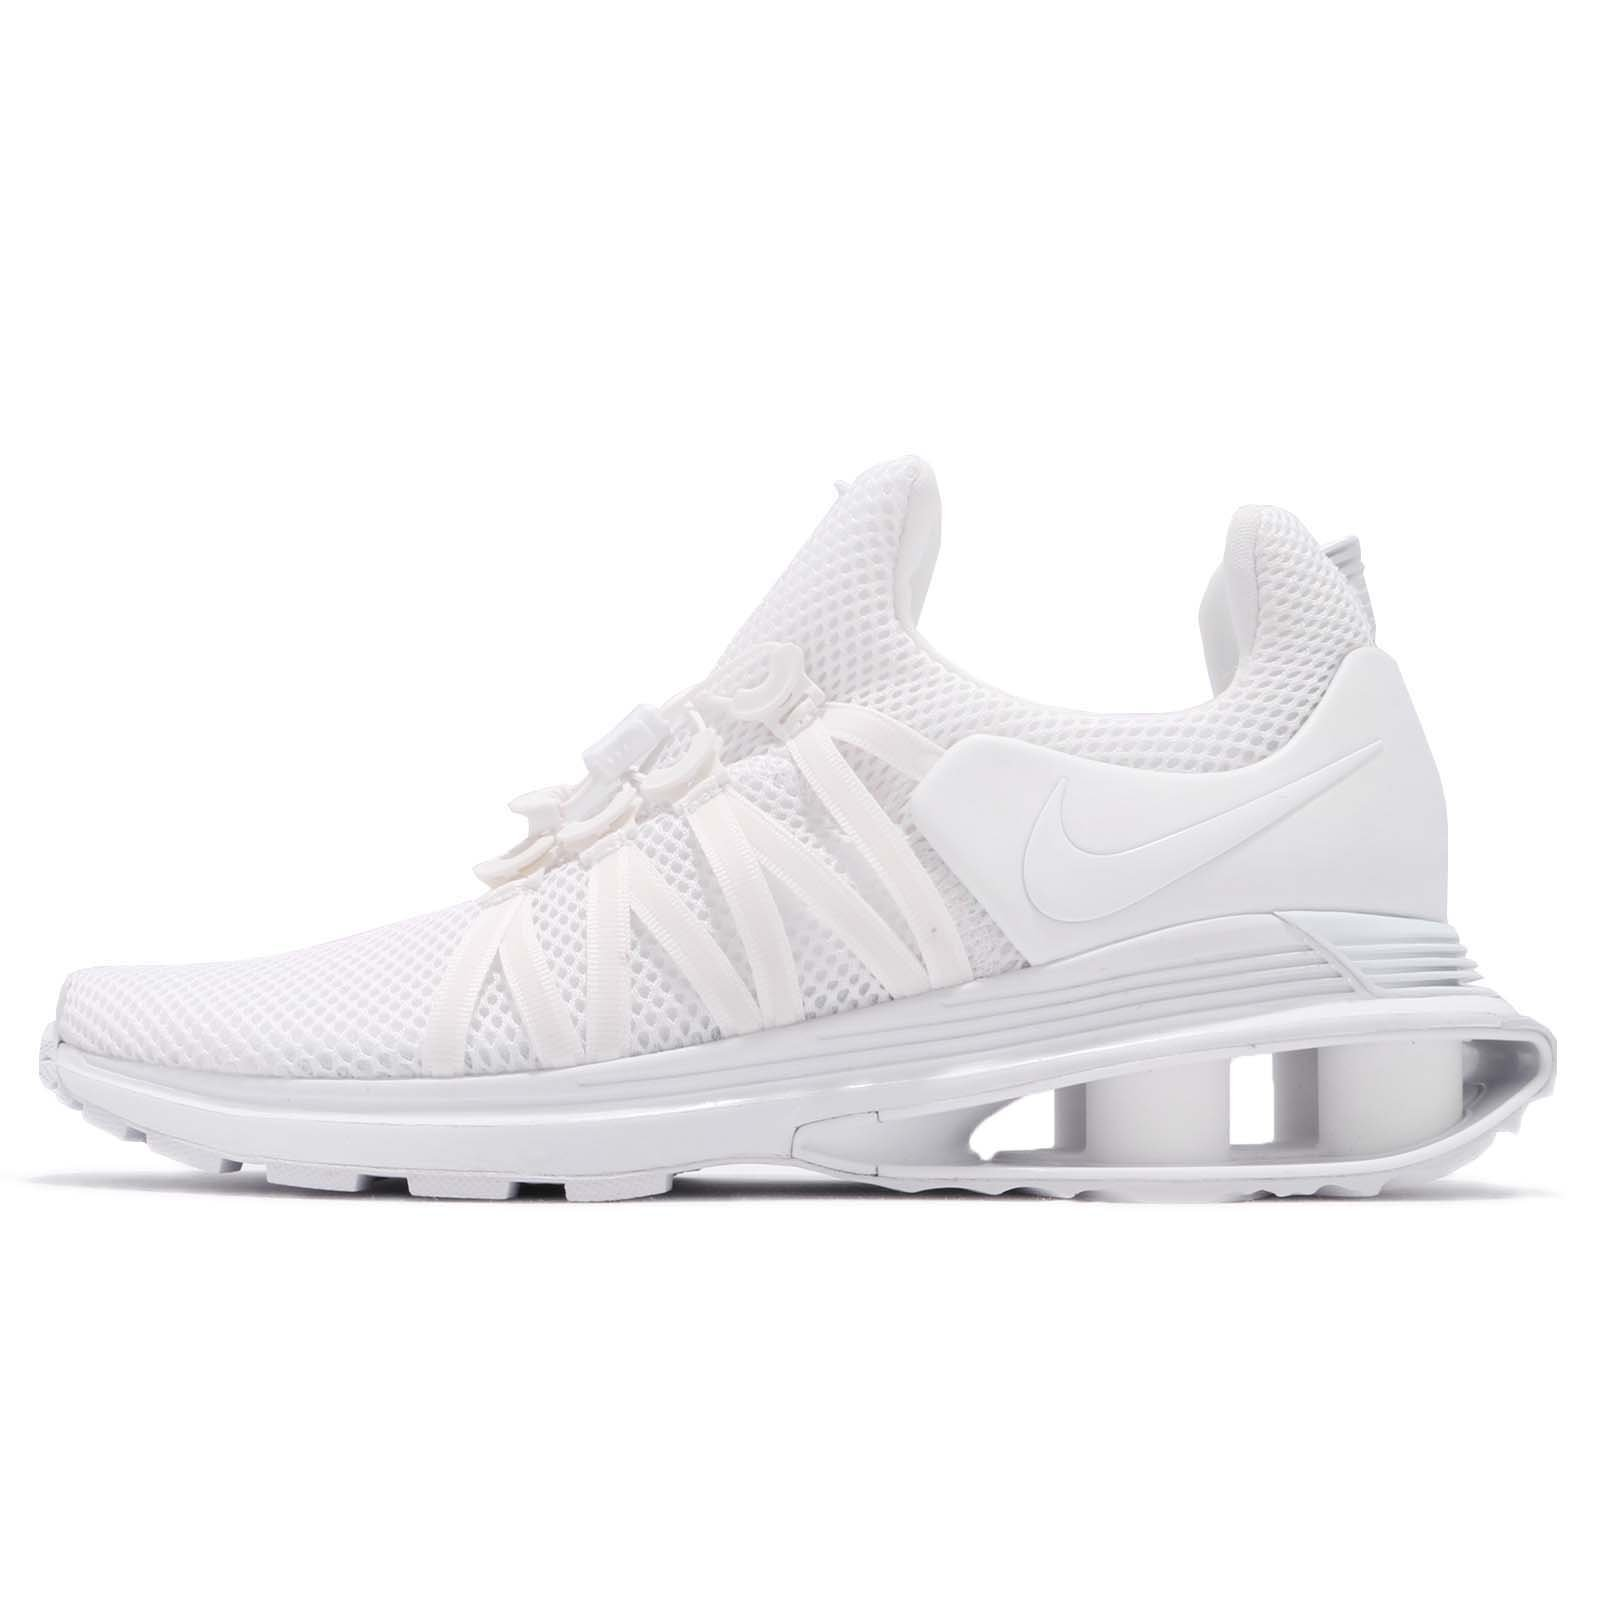 Galleon - Nike Men s Shox Gravity White White White Nylon Running Shoes  11.5 (D) M US 30c0eb8eb